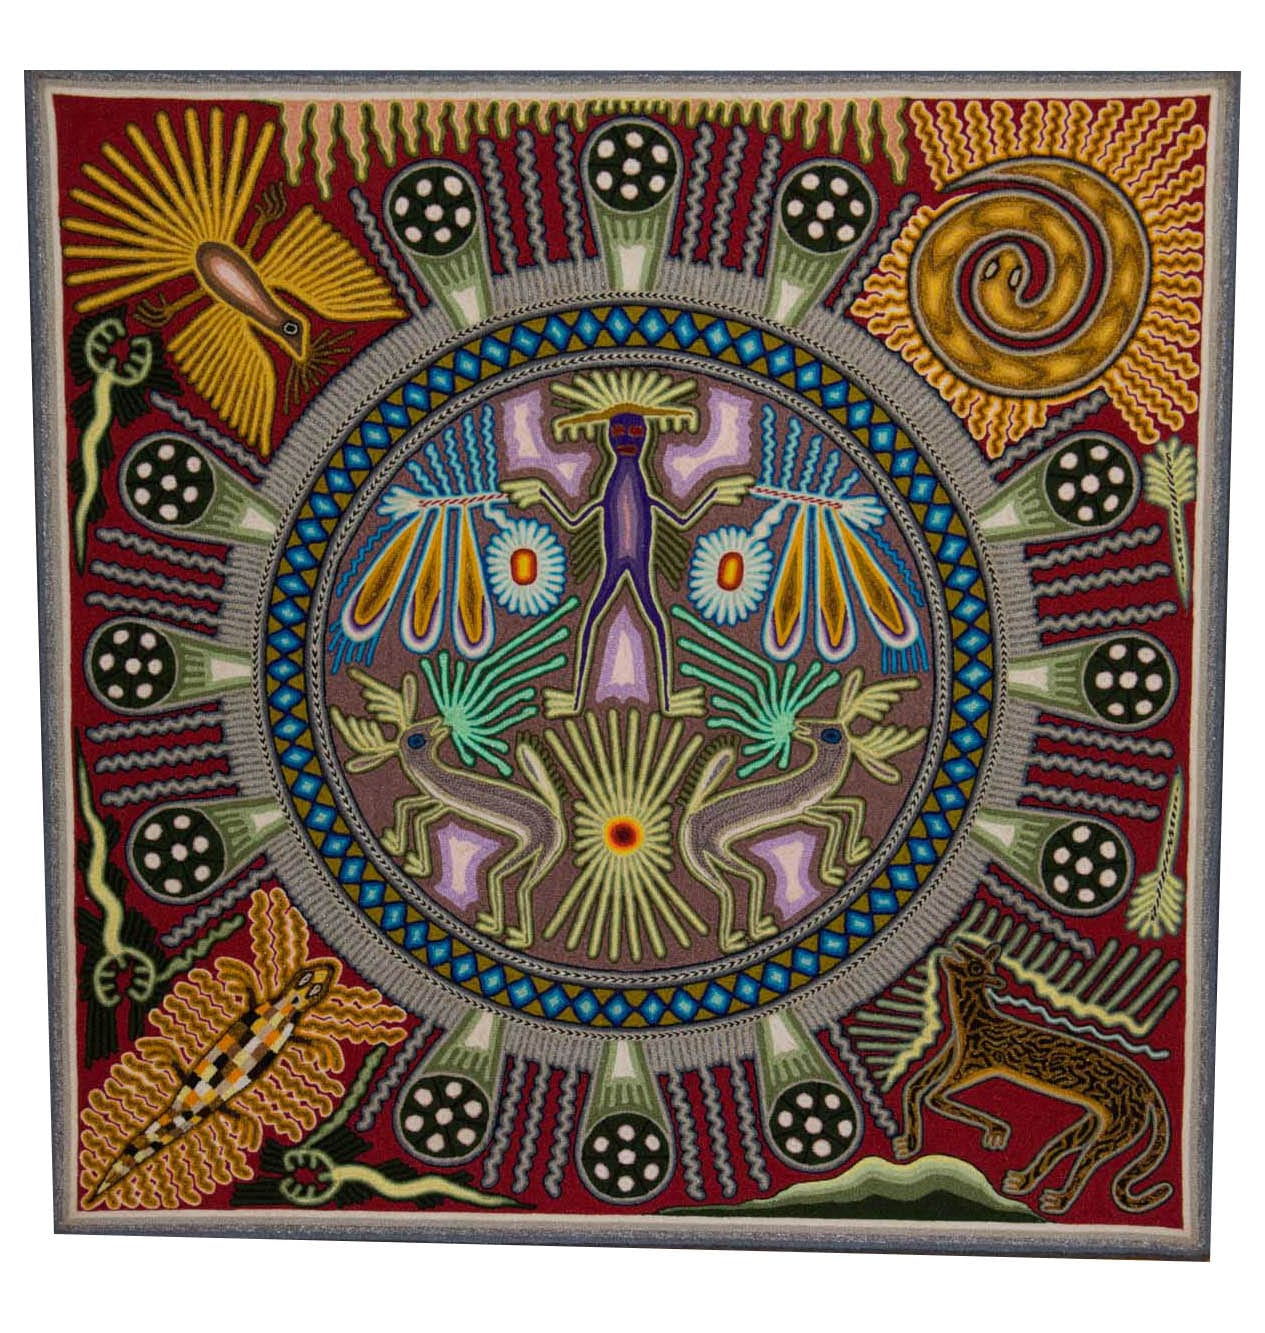 Stunning traditional Huichol art yarn painting featuring a magical circle full of nature. Buy fair trade Mexican textiles & support Huicol communities.